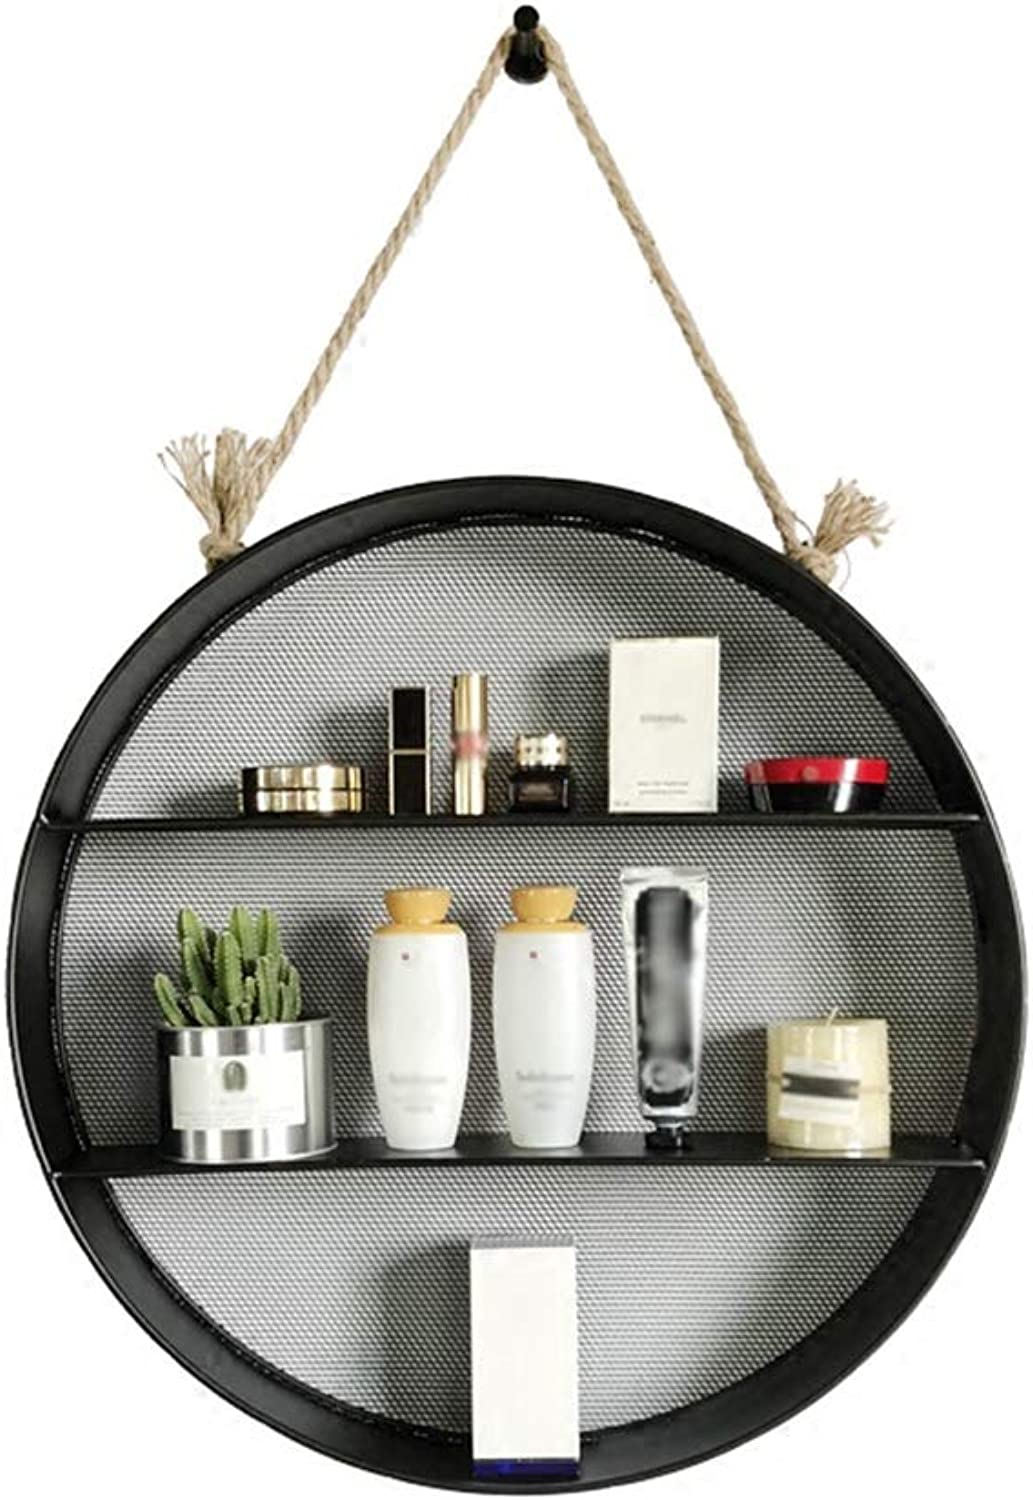 GWM Shelf Loft Retro Shelf,Hanging Multi-Layer Floating Wall Shelf with Hemp Rope Creative Round Iron Decorative Hanging Basket Storage Racks